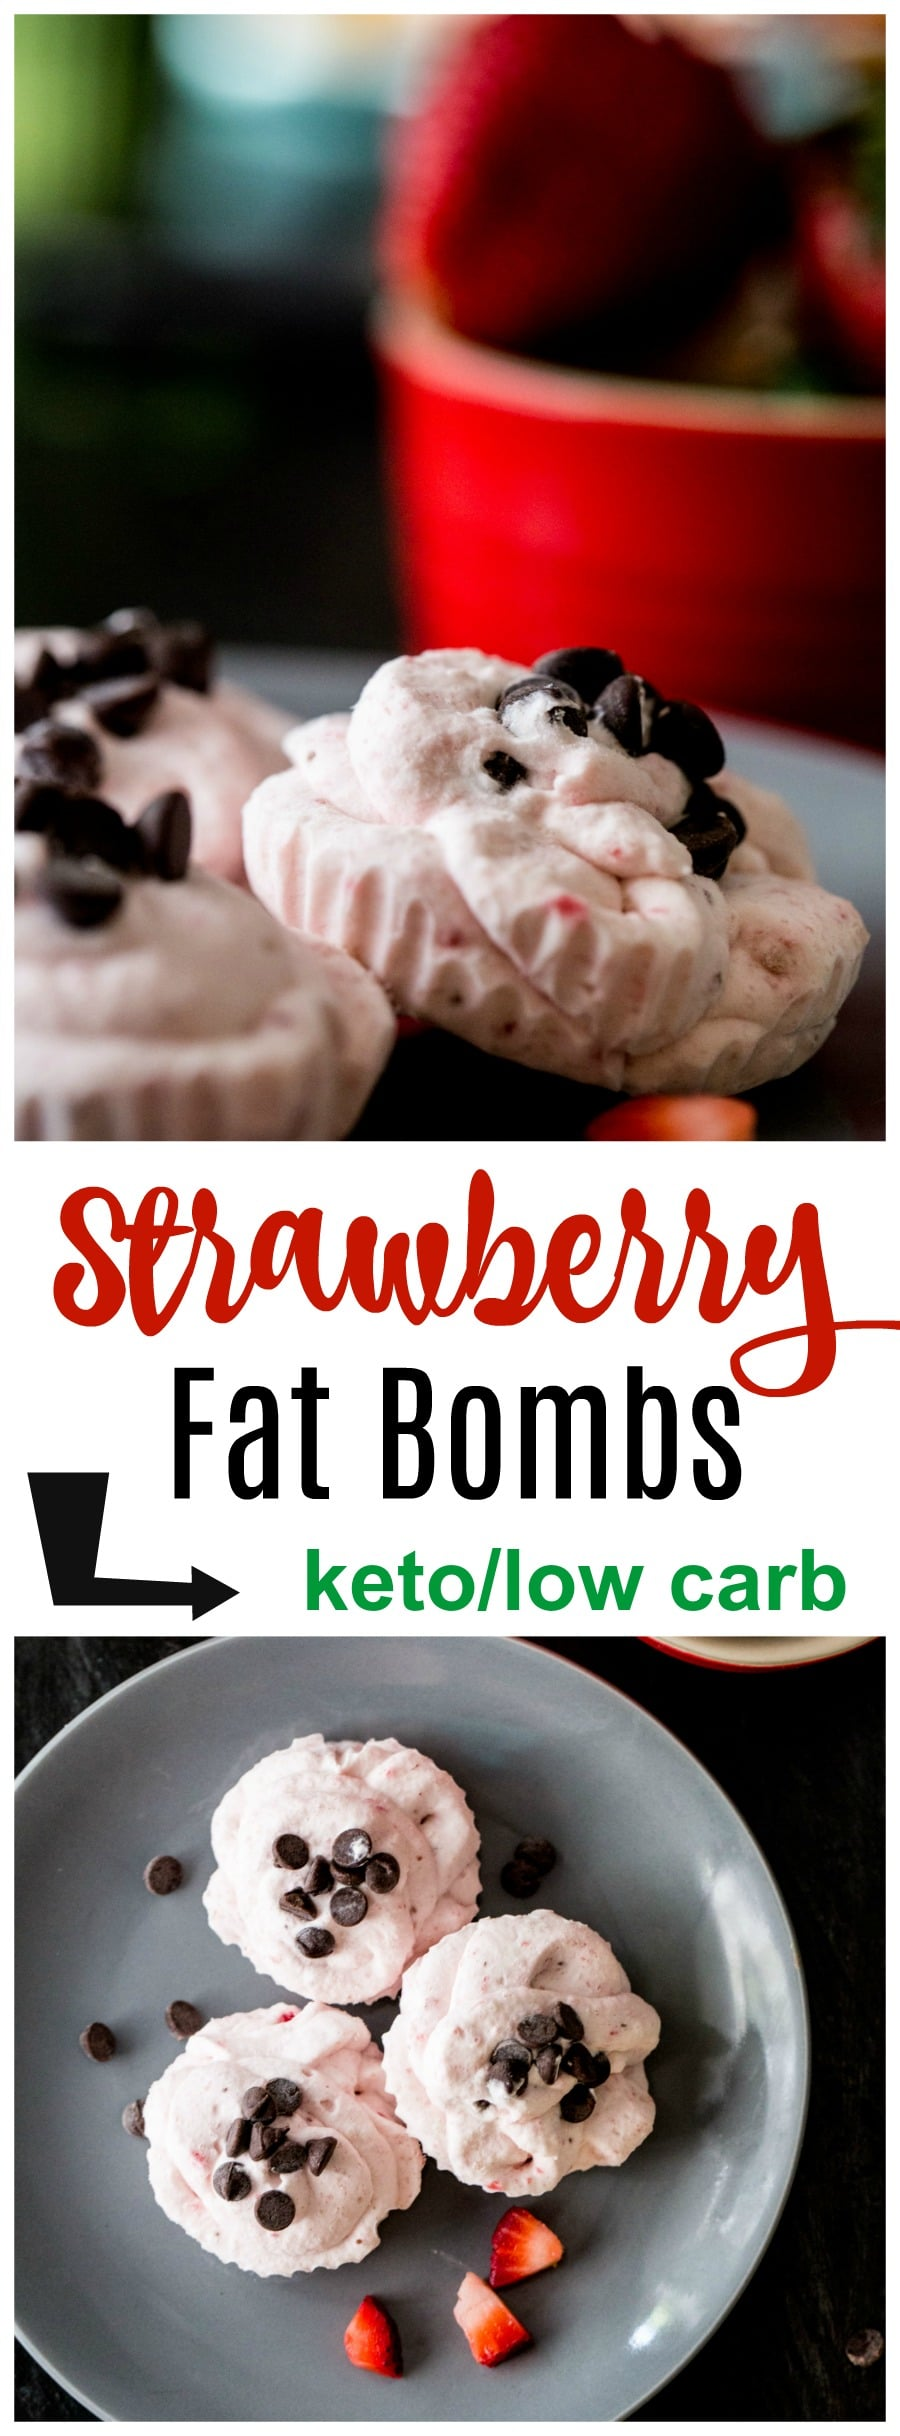 Make our Strawberry Keto Bomb Recipe as a great satisfying fat bomb recipe idea for your cravings. Top with some sugar-free chocolate for the perfect treat!